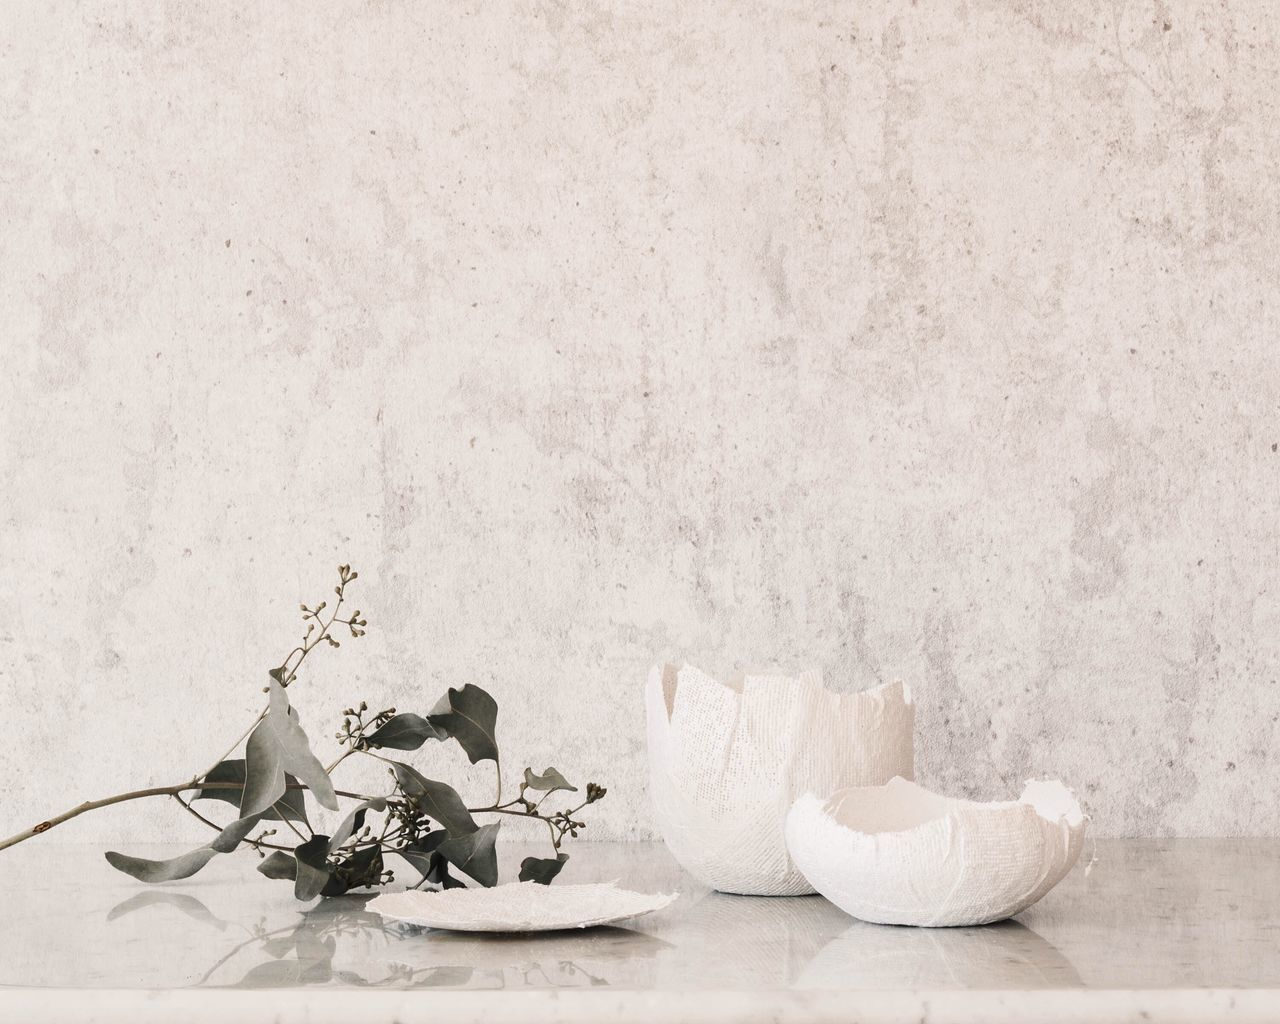 Table Indoors  Beige Background Contemporary Dinner Table Dinnerware  Kitchen Foodstyling Studio Shot Still Life Food And Drink